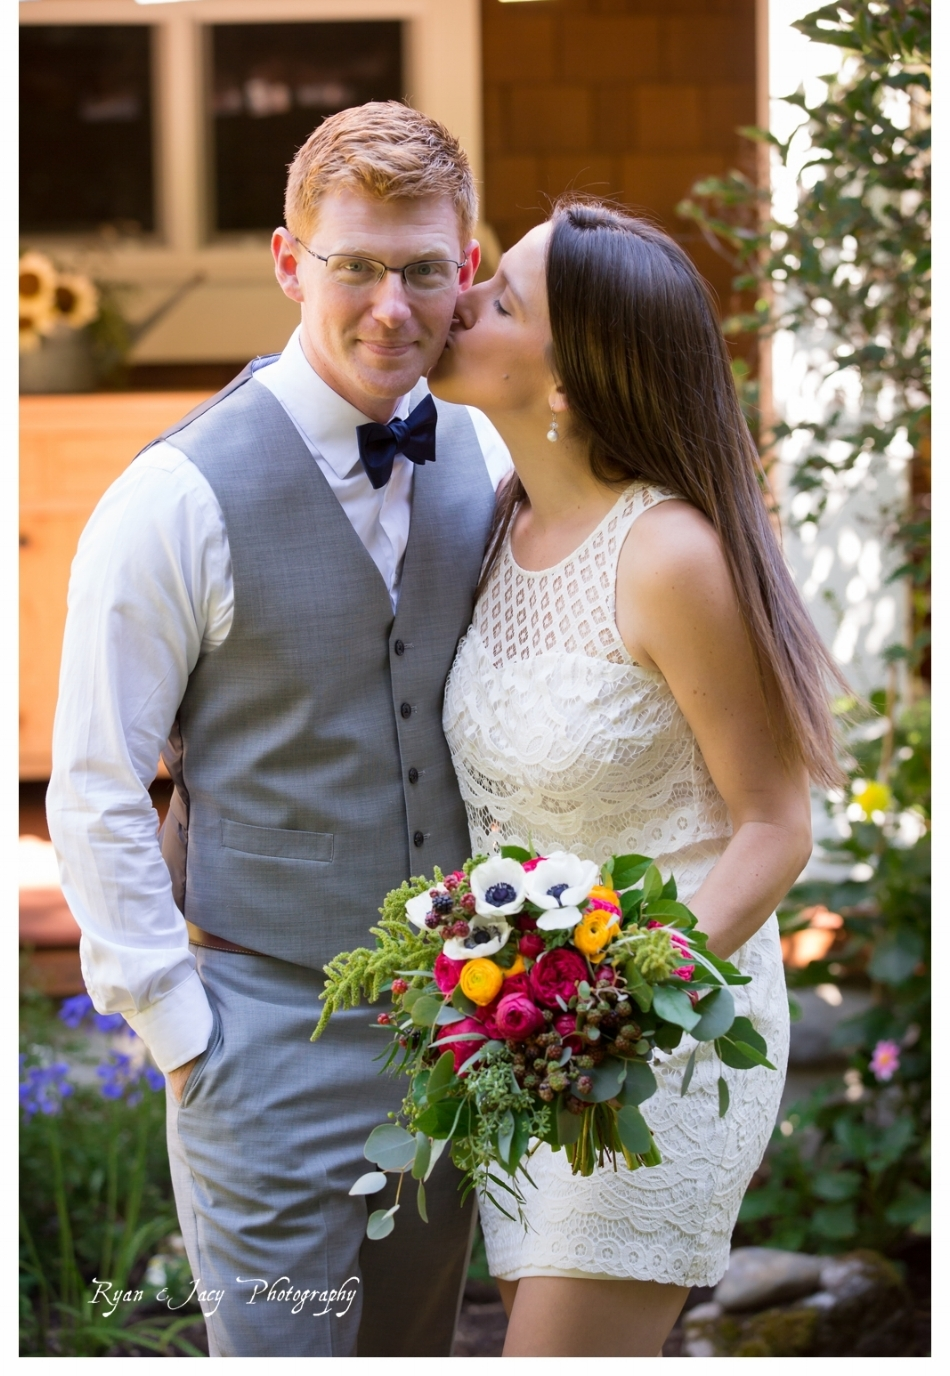 Vibrant garden flower bouquet Ryan and Jacy Photography